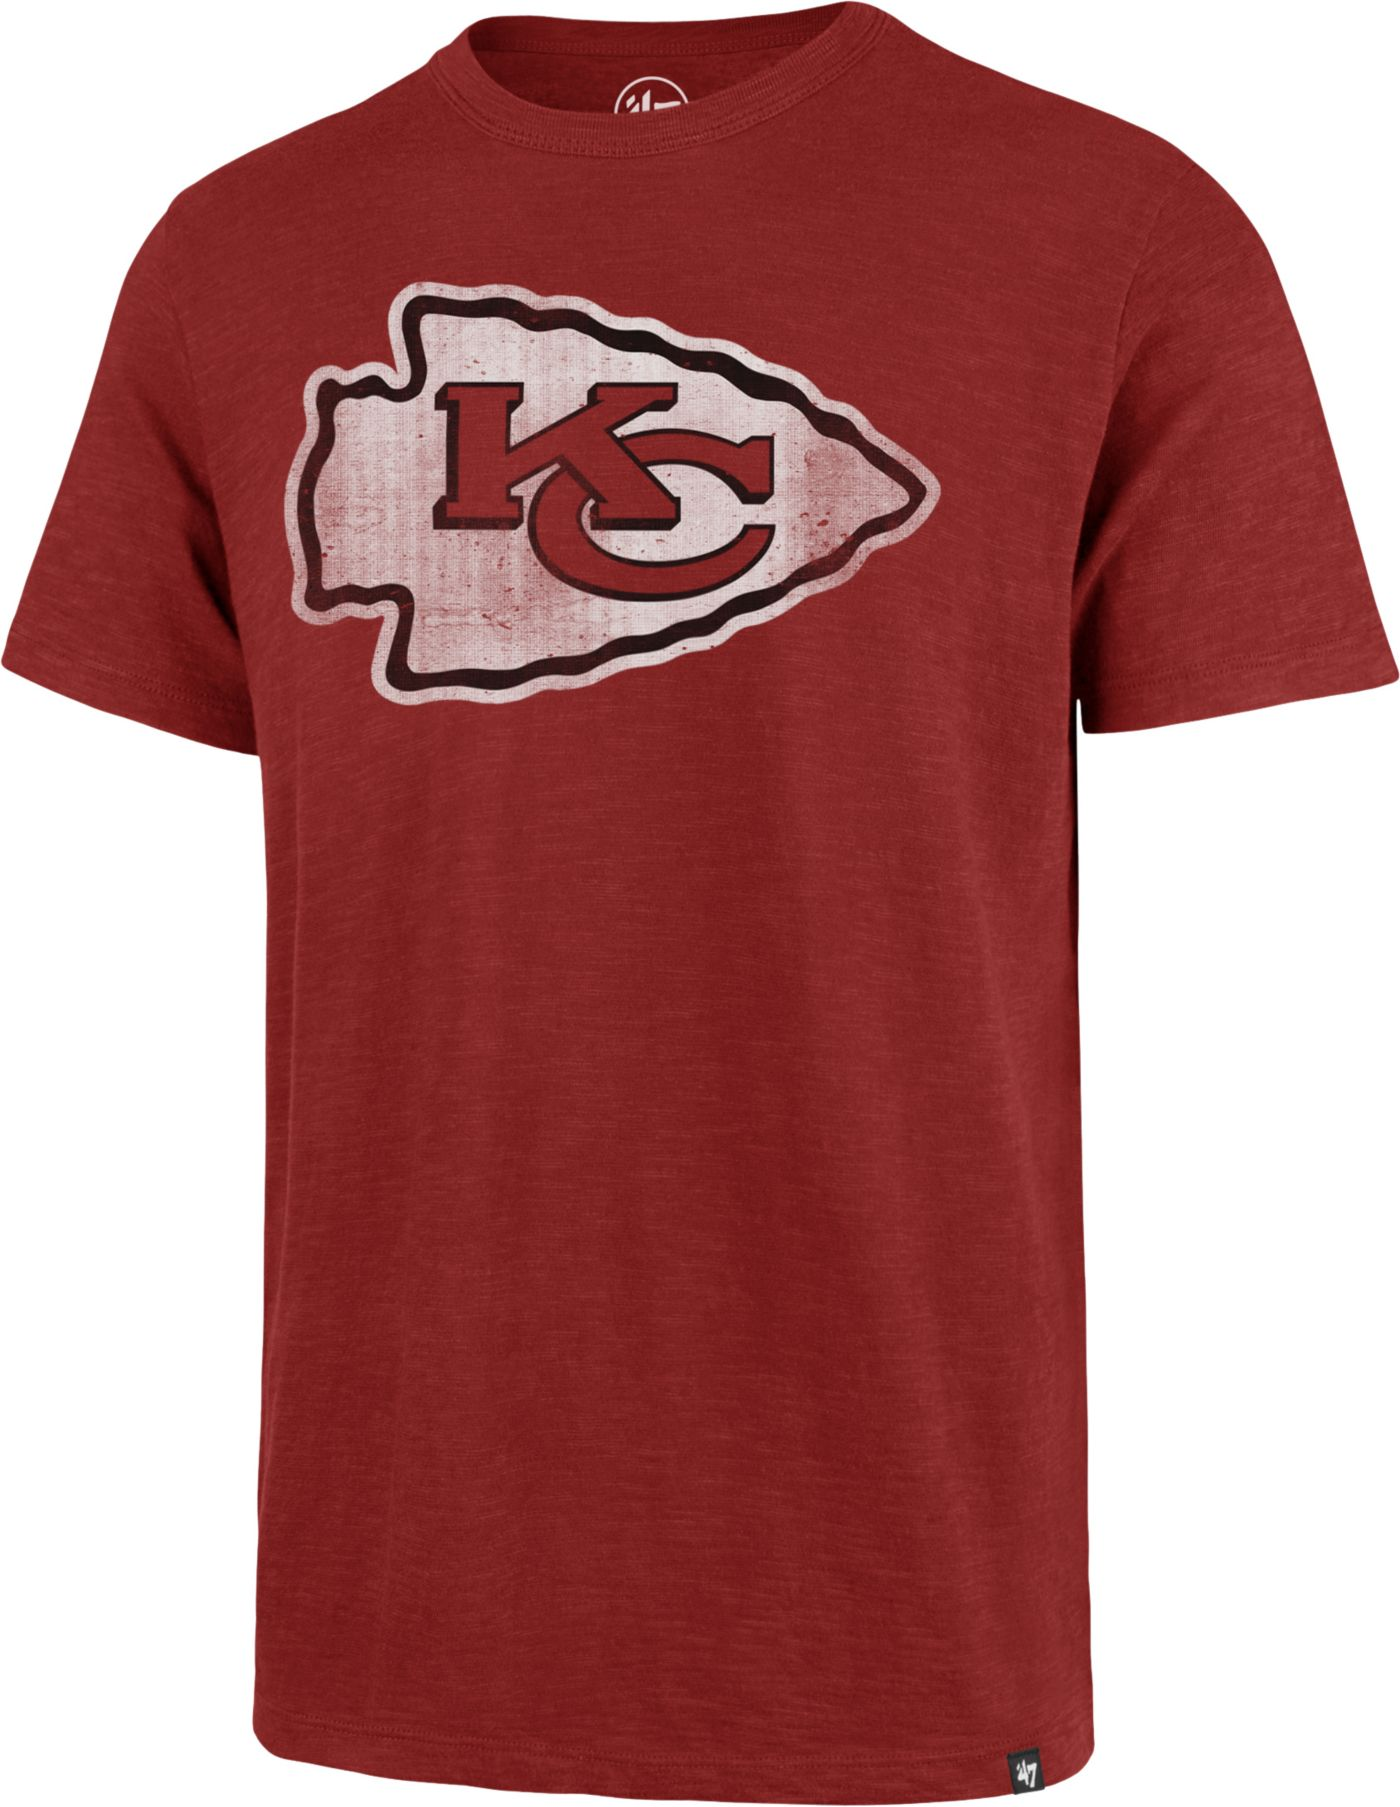 47 Men's Kansas City Chiefs Scrum Logo Red T-Shirt